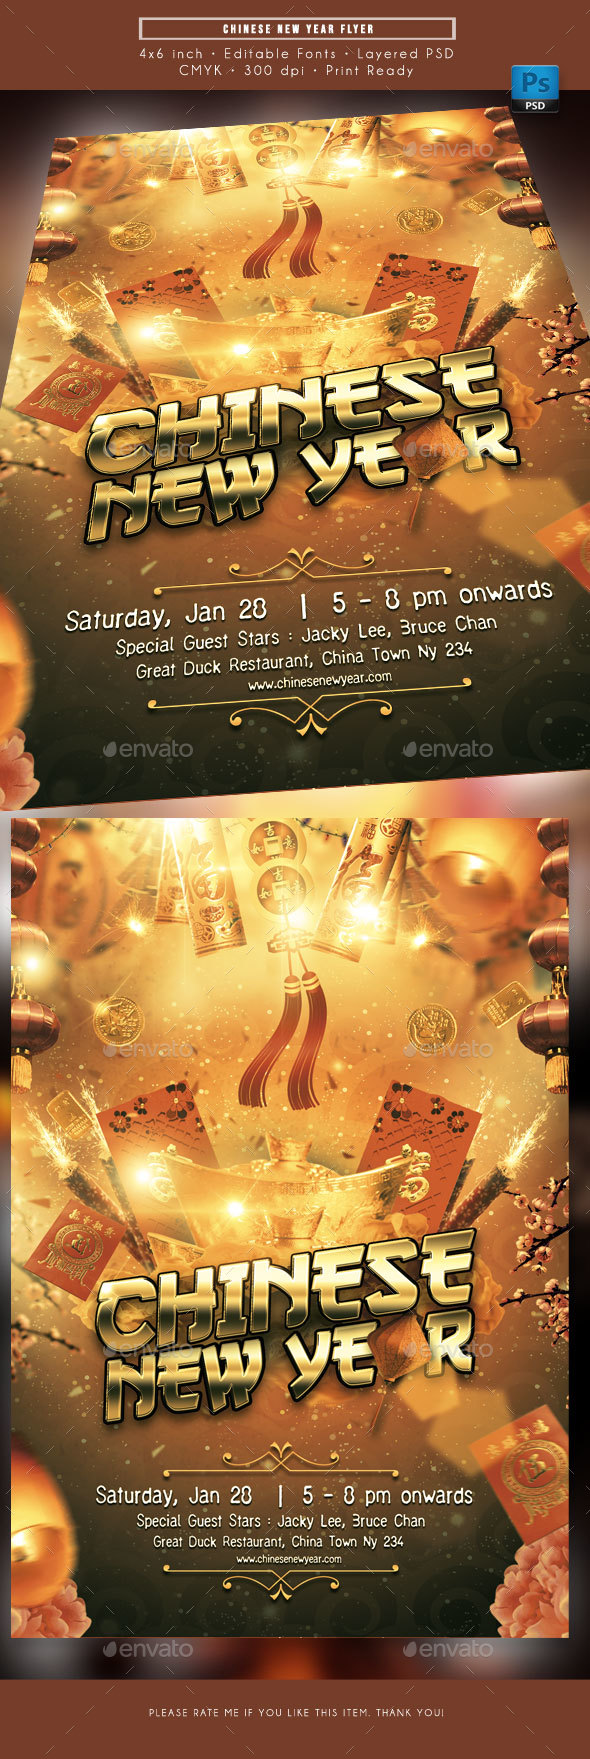 Event and Red Holiday Events Flyer Templates from